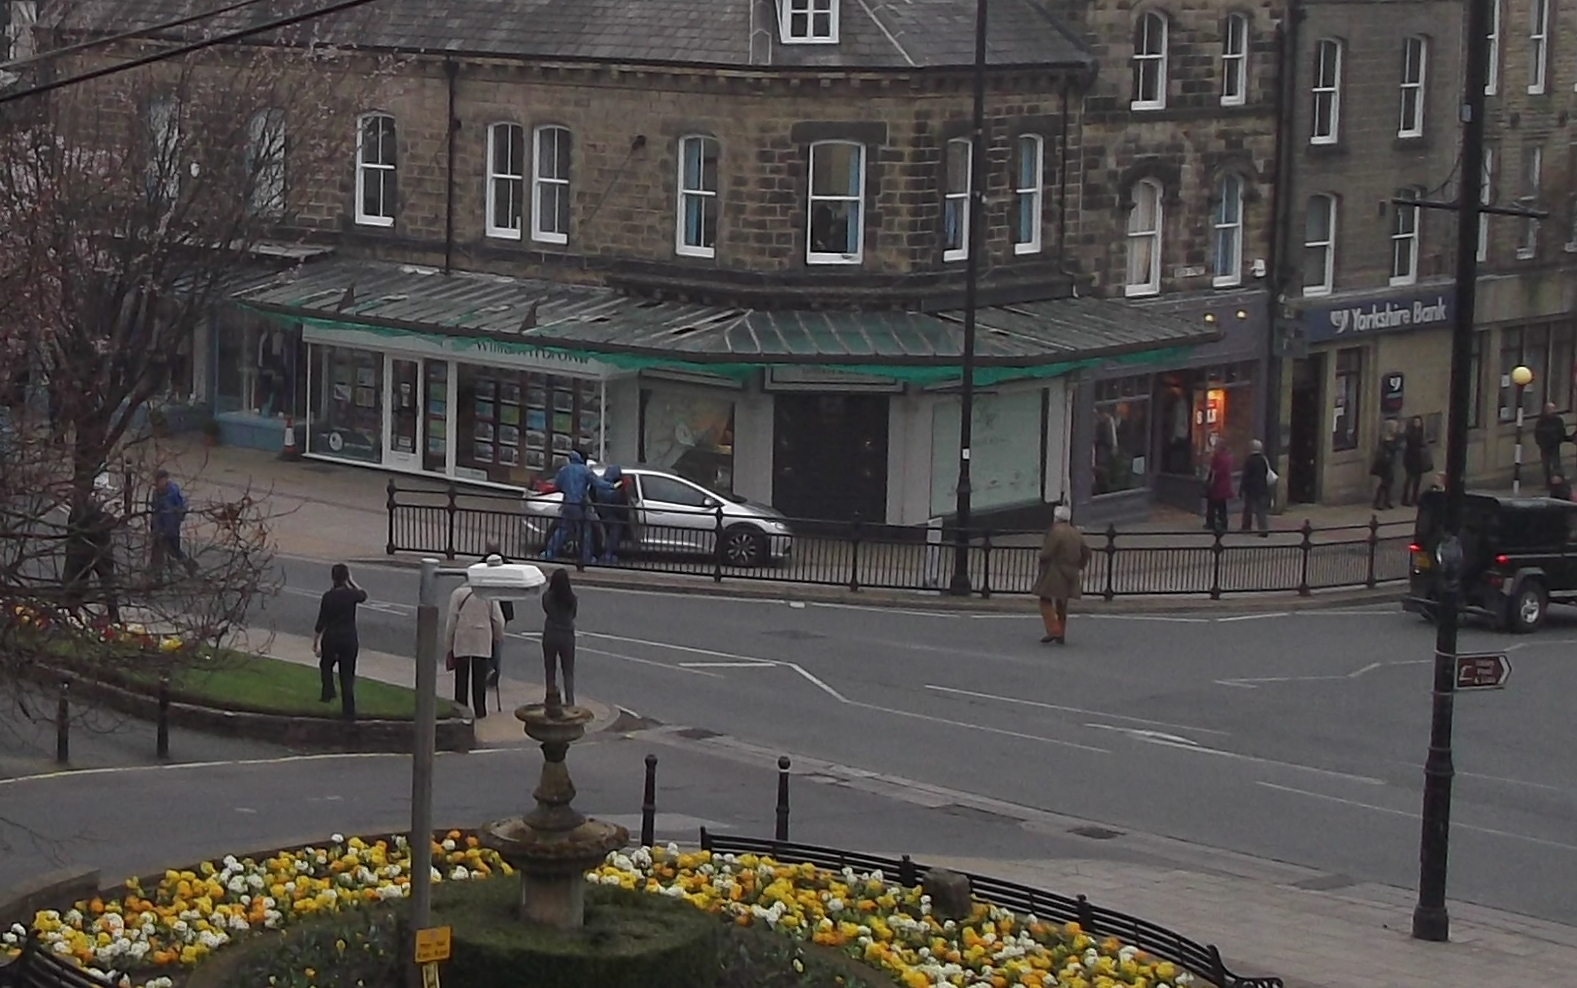 NEW EXCLUSIVE VIDEO: Armed robbers raiding Ilkley jewellers